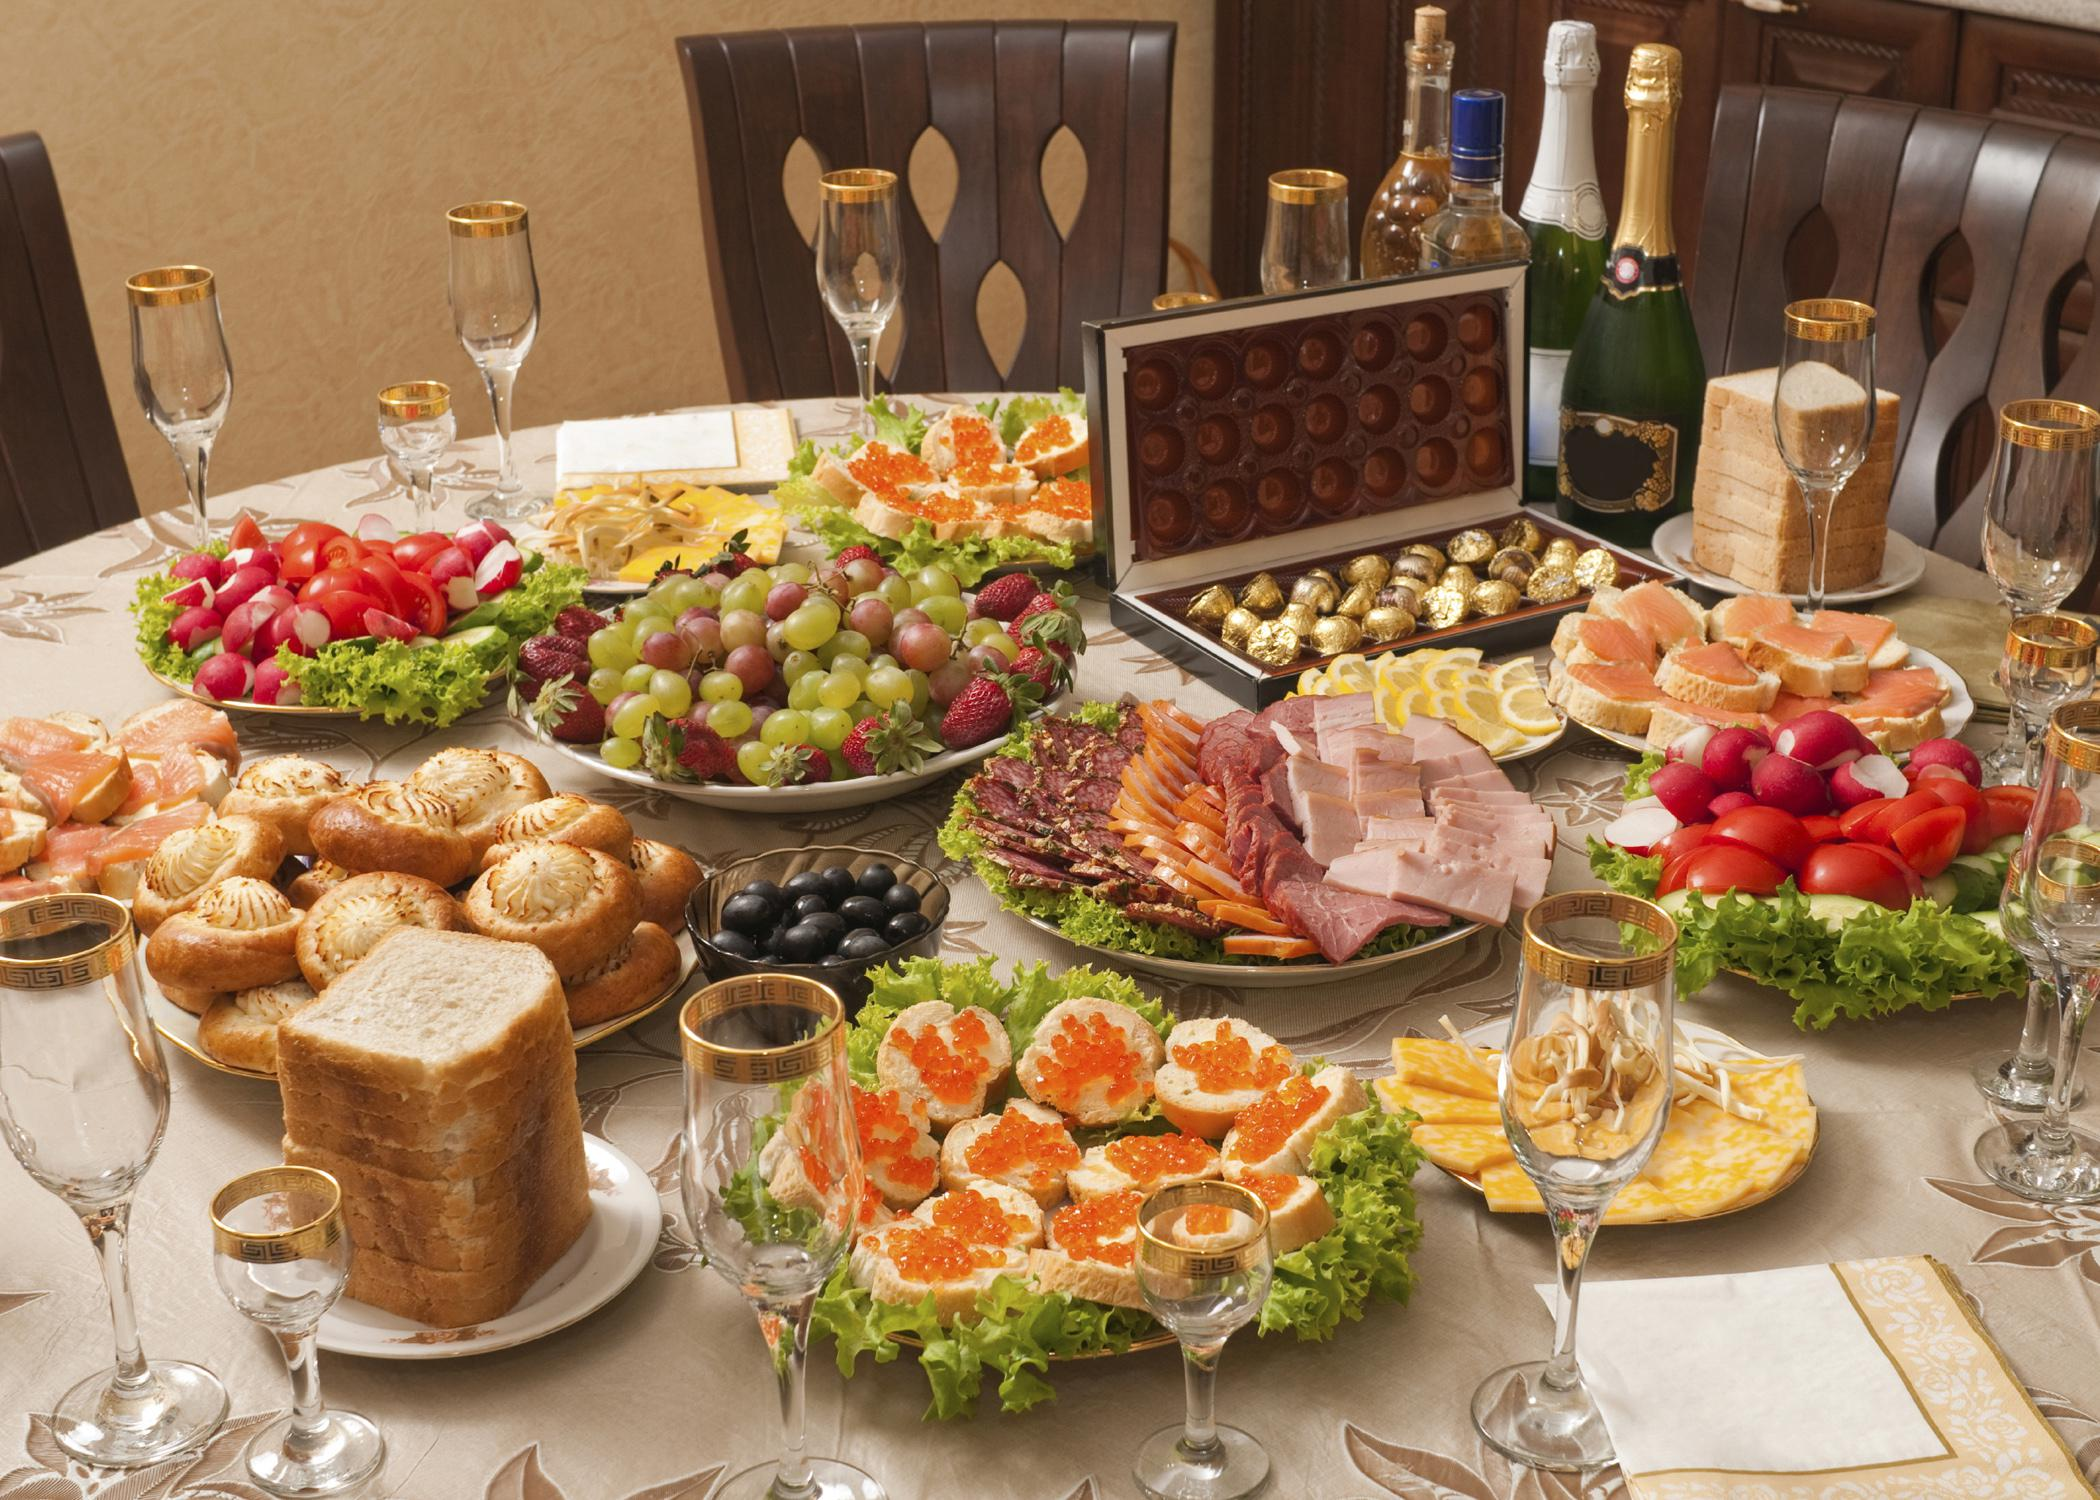 Portion control and careful choices make it possible to enjoy holiday meals without gaining weight. (Photo by Getty Images/iStockphoto)